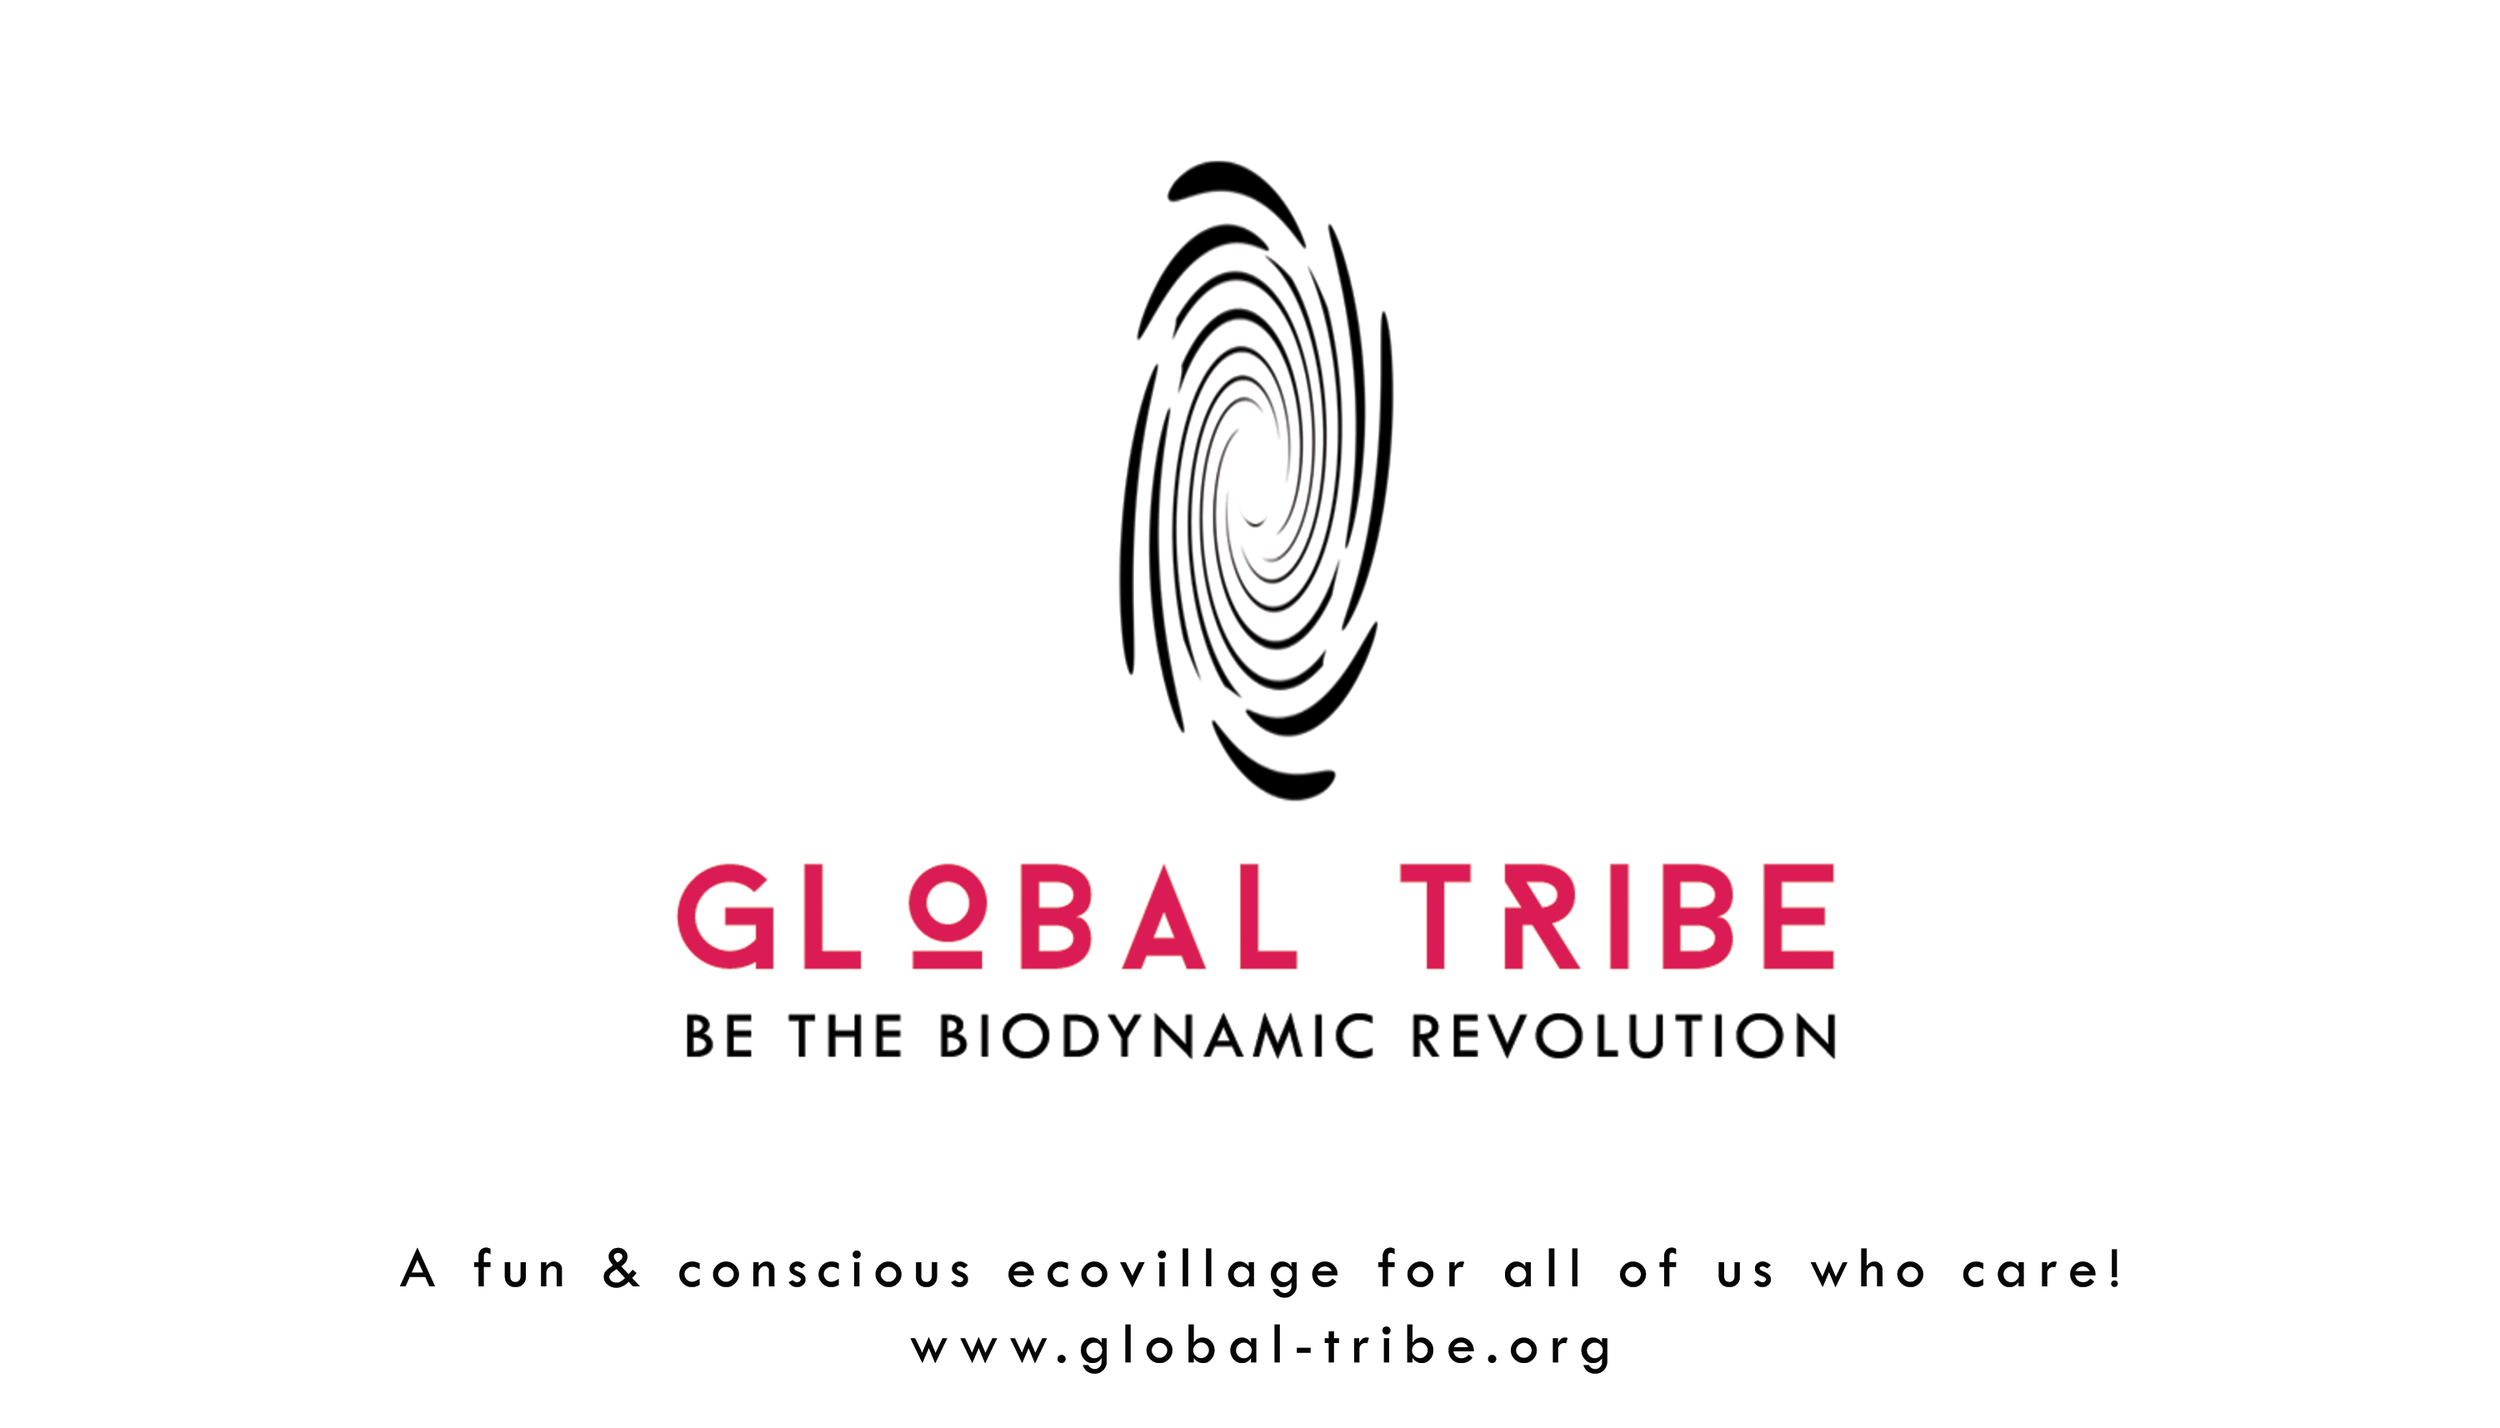 Global-Tribe-Business-Card-hi-res.png